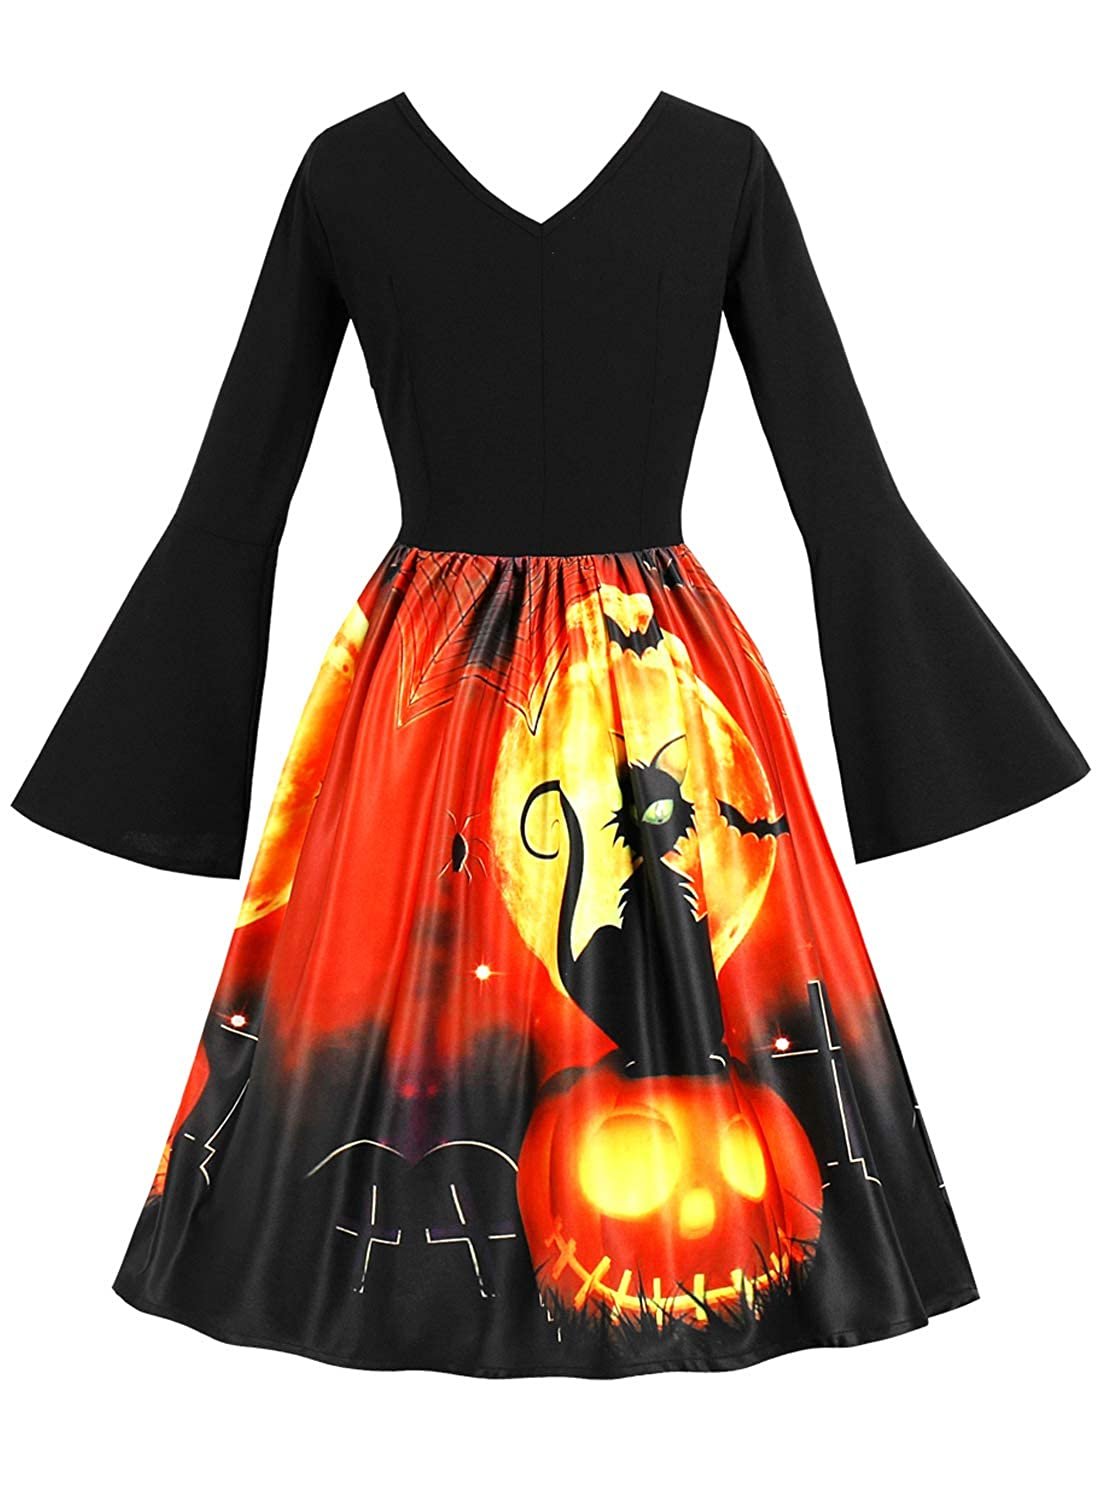 MERRYA Women's Vintage Halloween Print Flare Sleeve Cocktail Party Dress